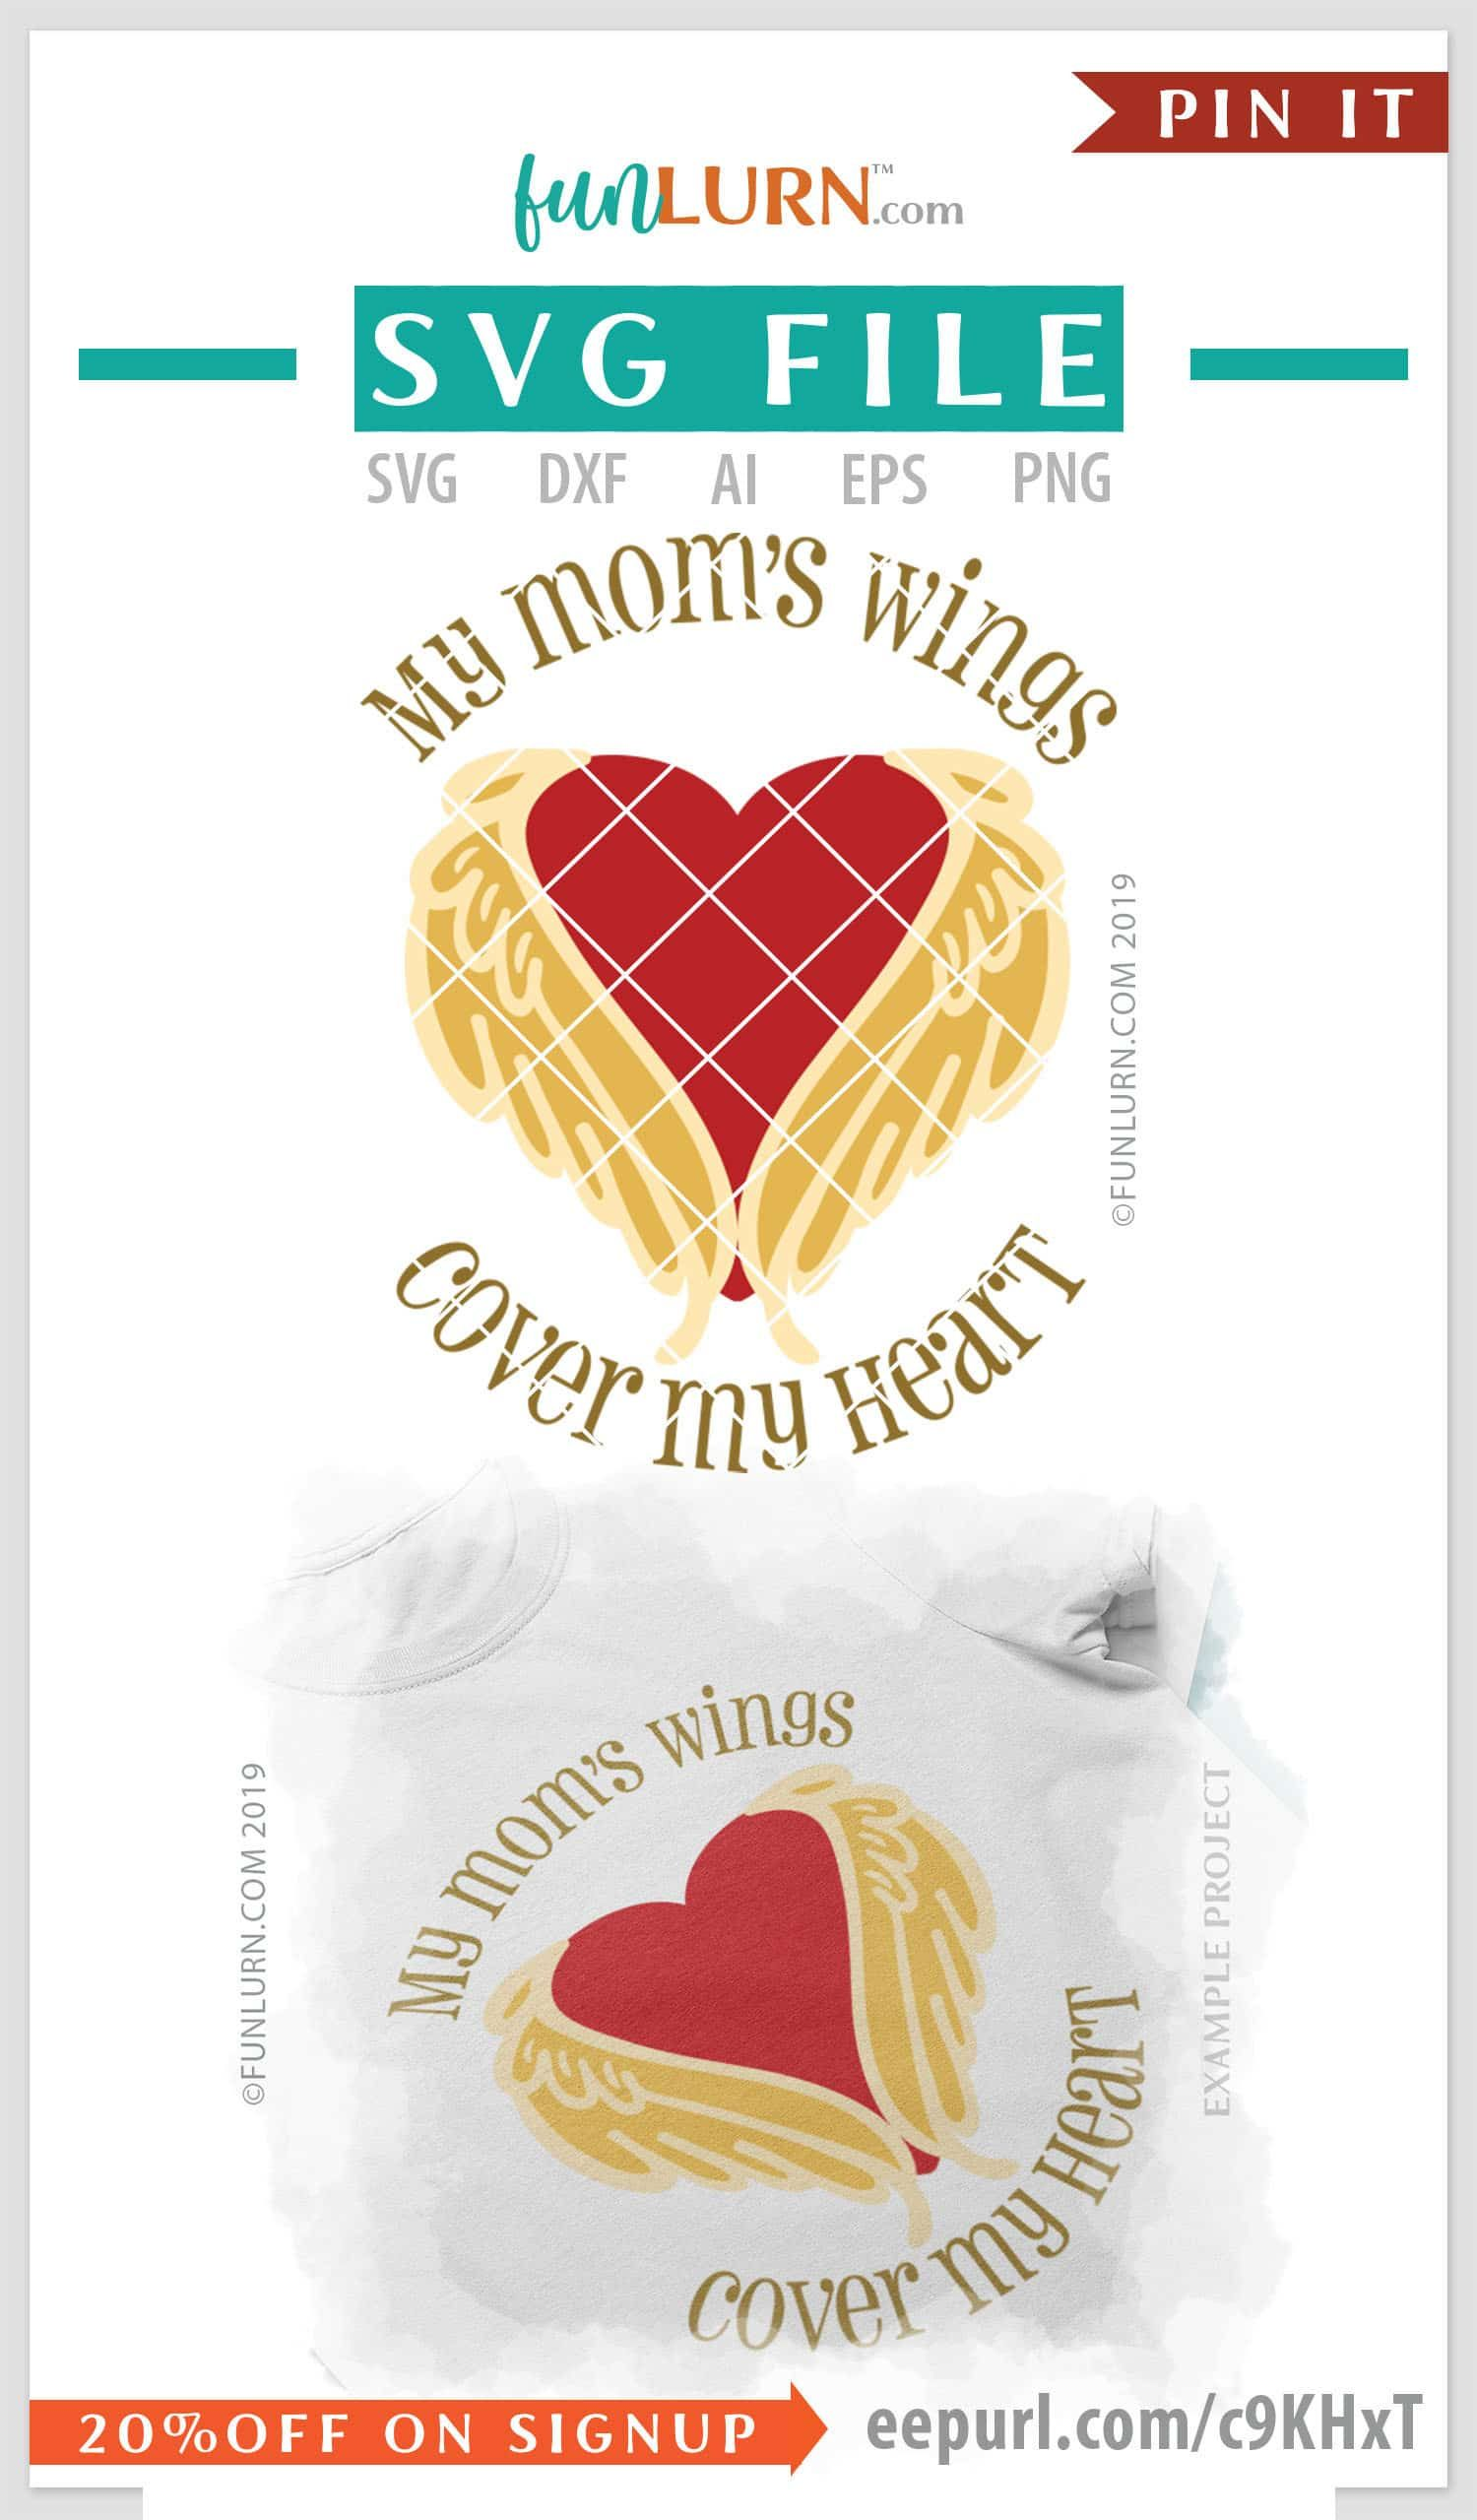 My mom's wings cover my heart Loving Memory SVGs